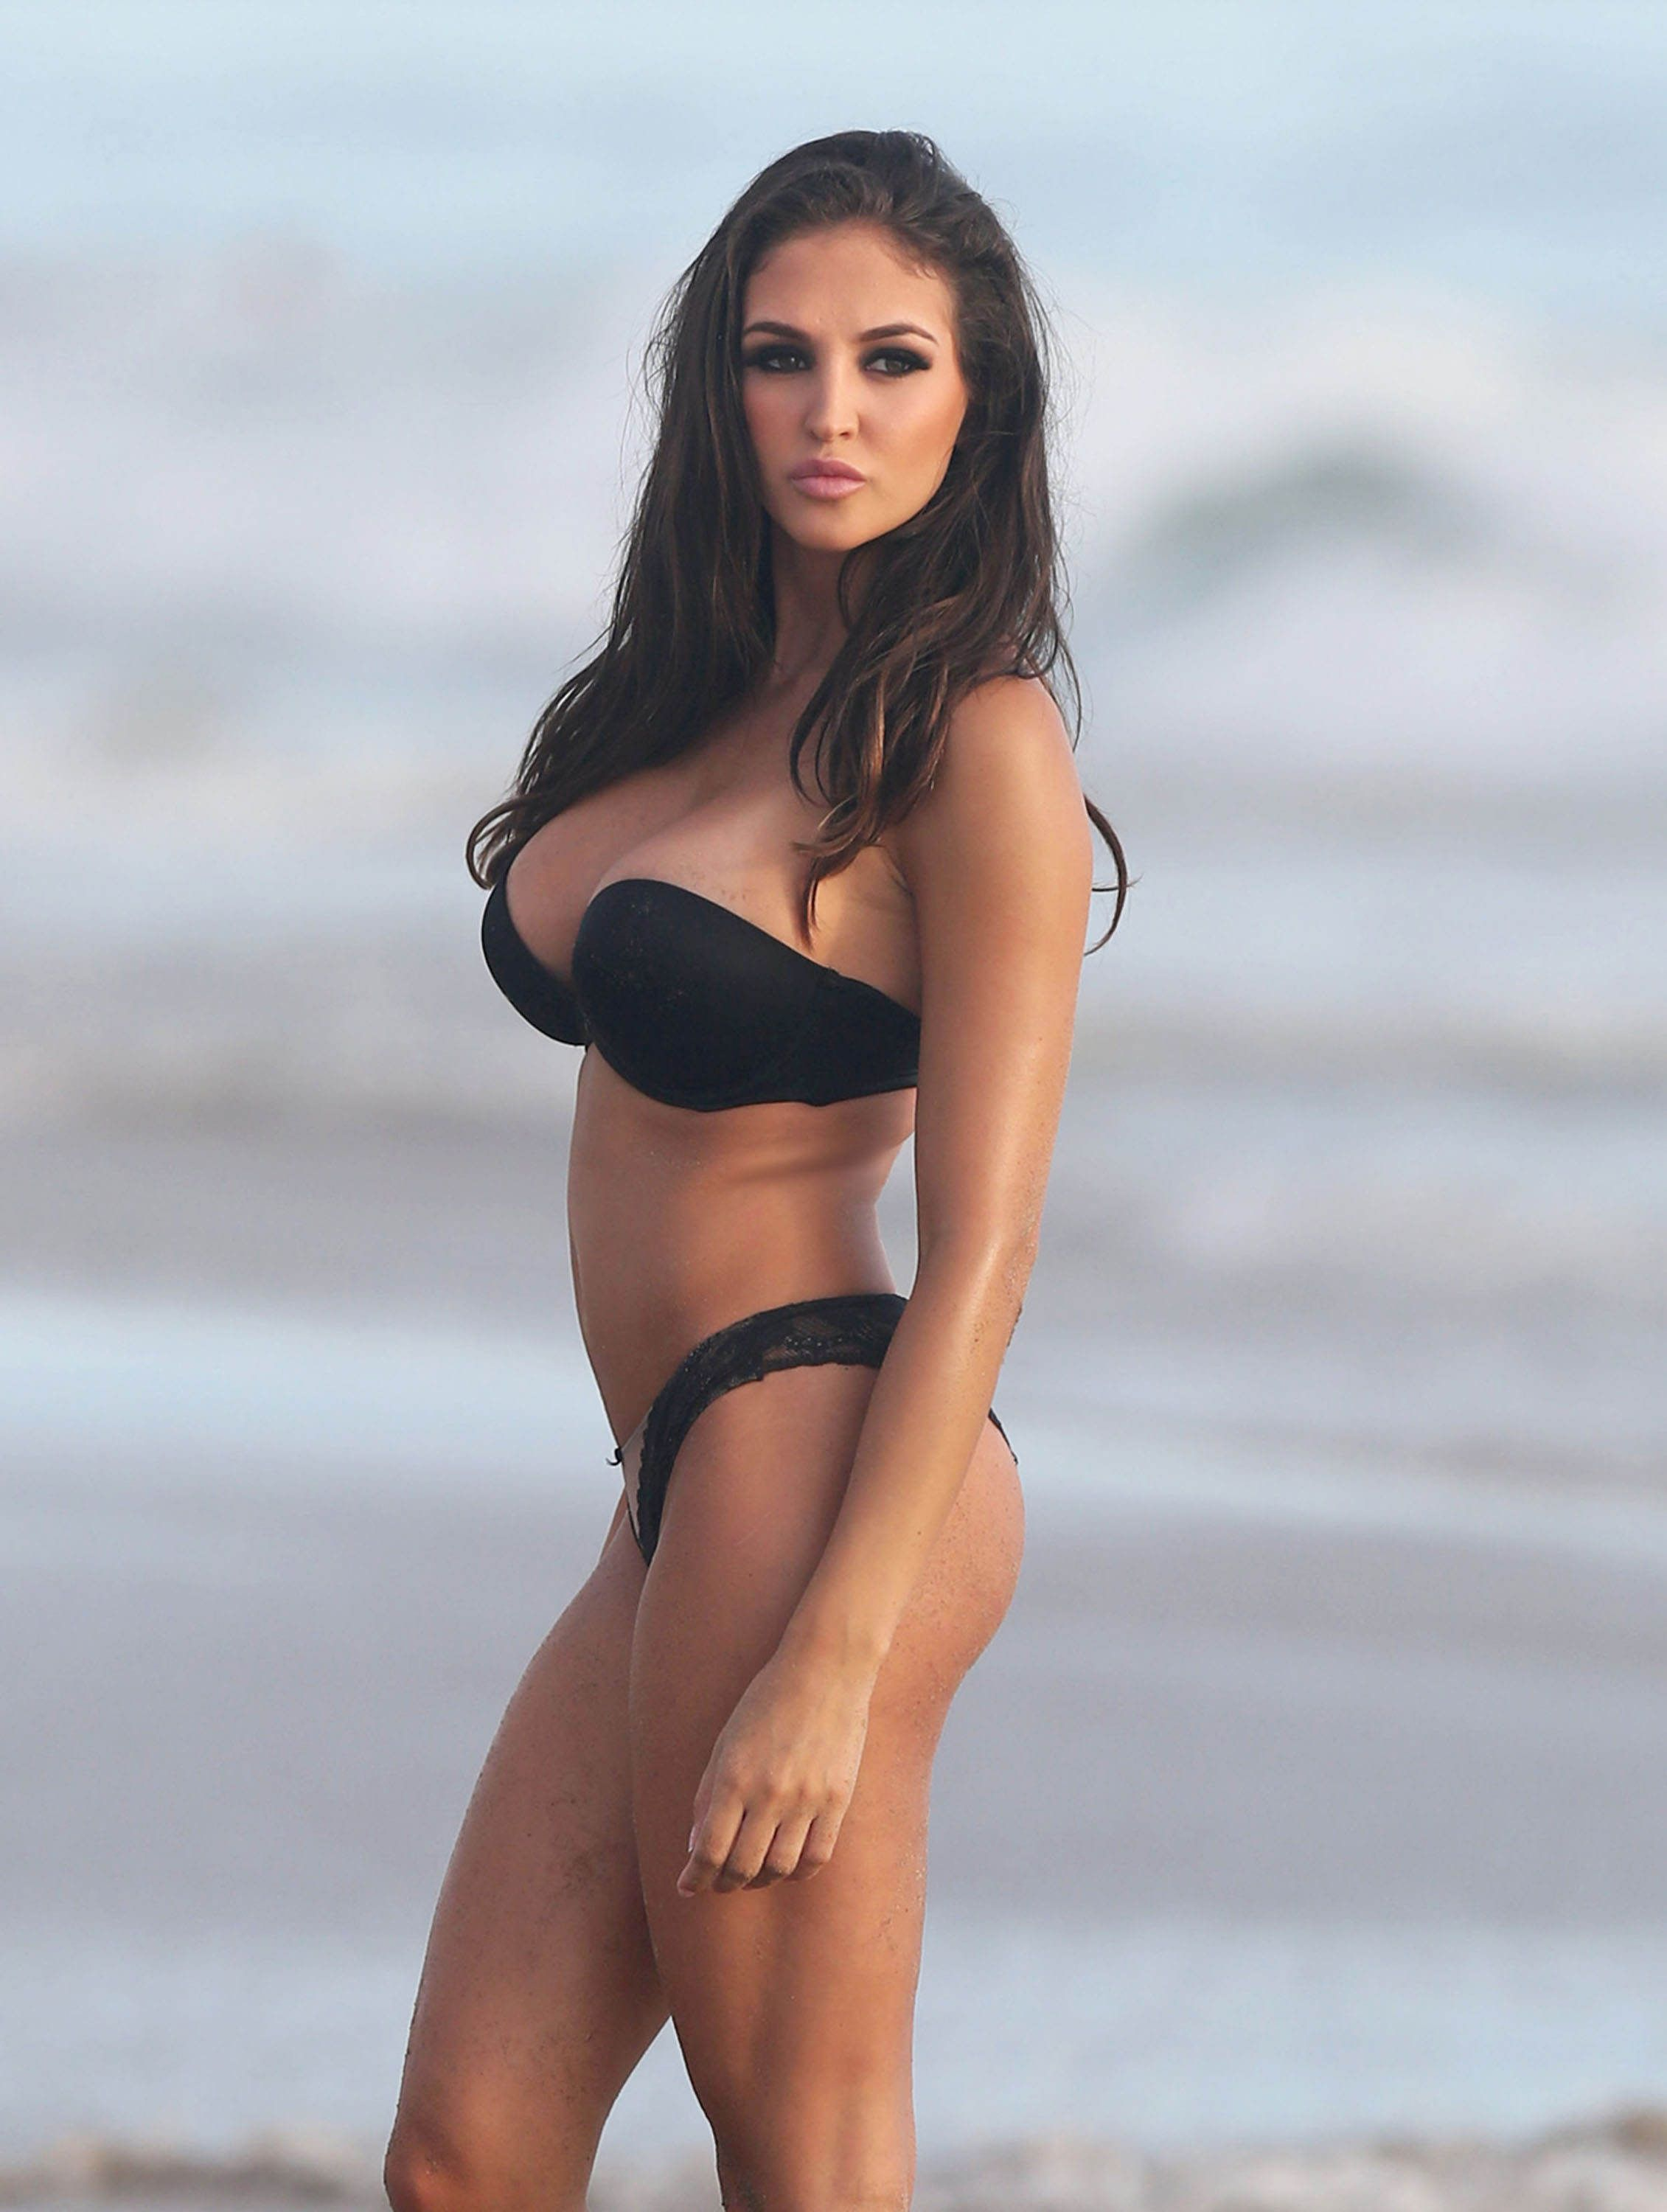 Snapchat Jaclyn Swedberg nude (46 photo), Tits, Fappening, Boobs, butt 2006